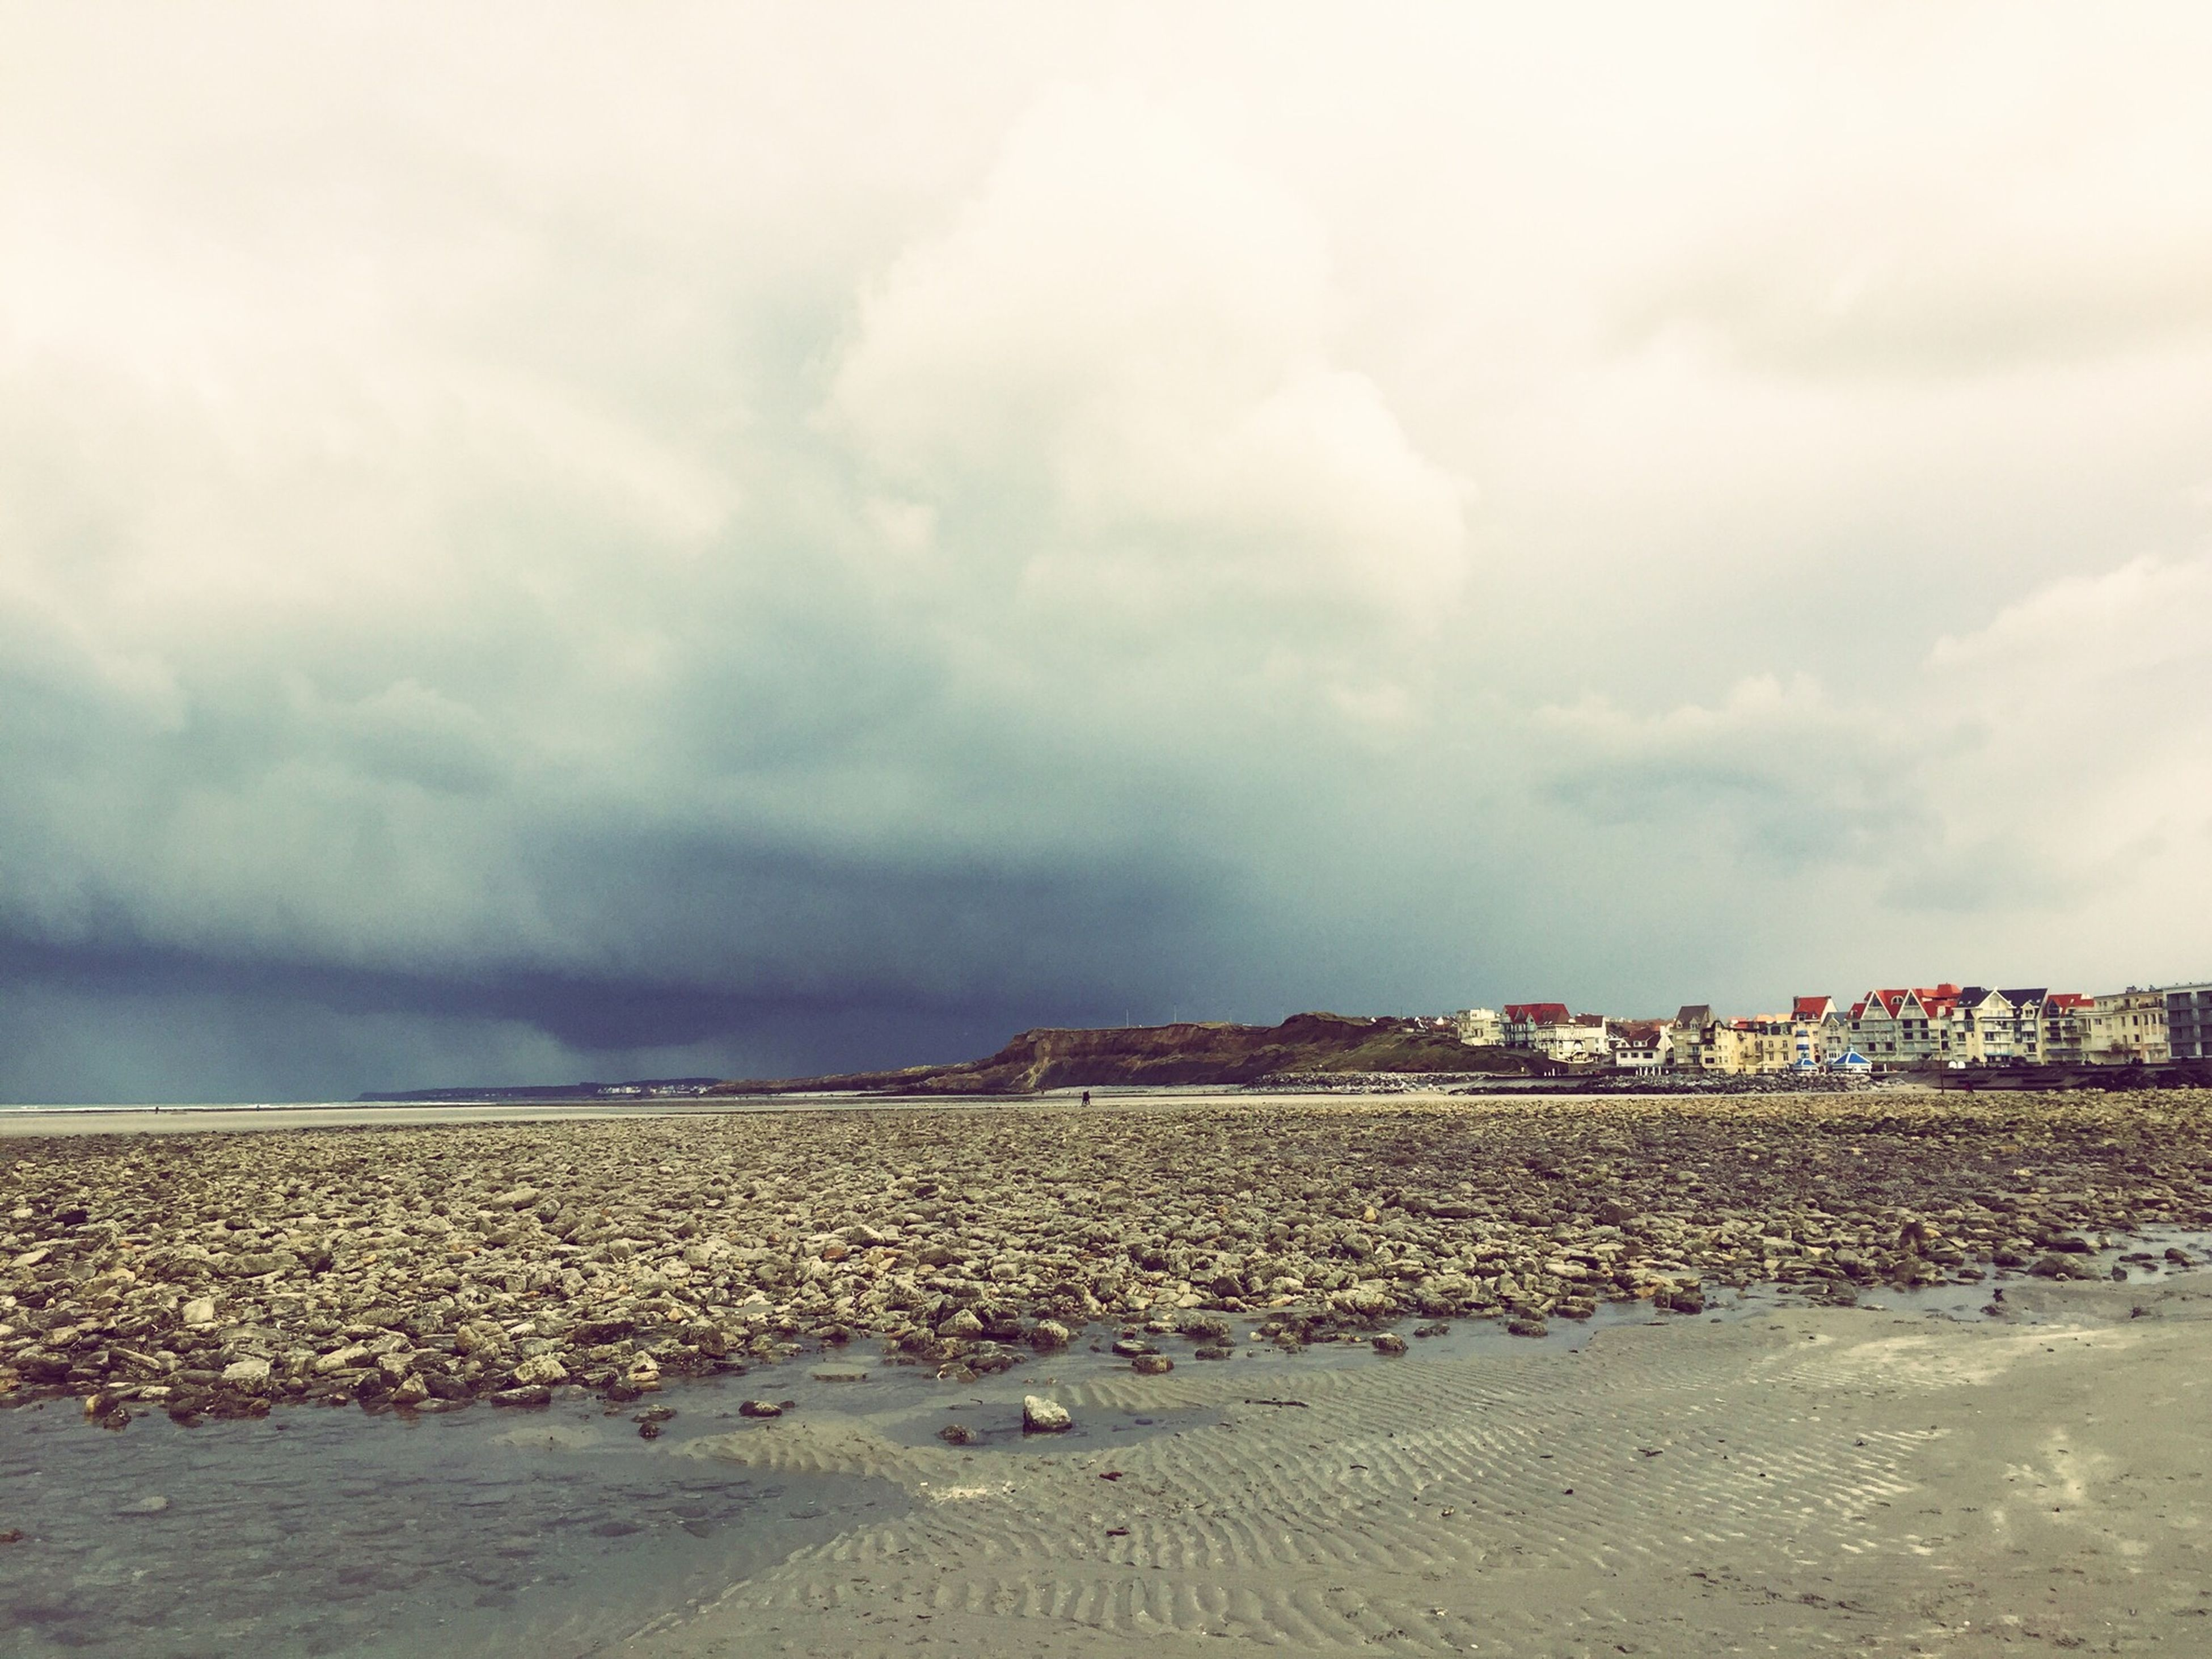 sky, cloud - sky, cloudy, building exterior, built structure, architecture, overcast, cloud, weather, house, landscape, tranquility, day, tranquil scene, nature, beach, outdoors, sand, no people, scenics